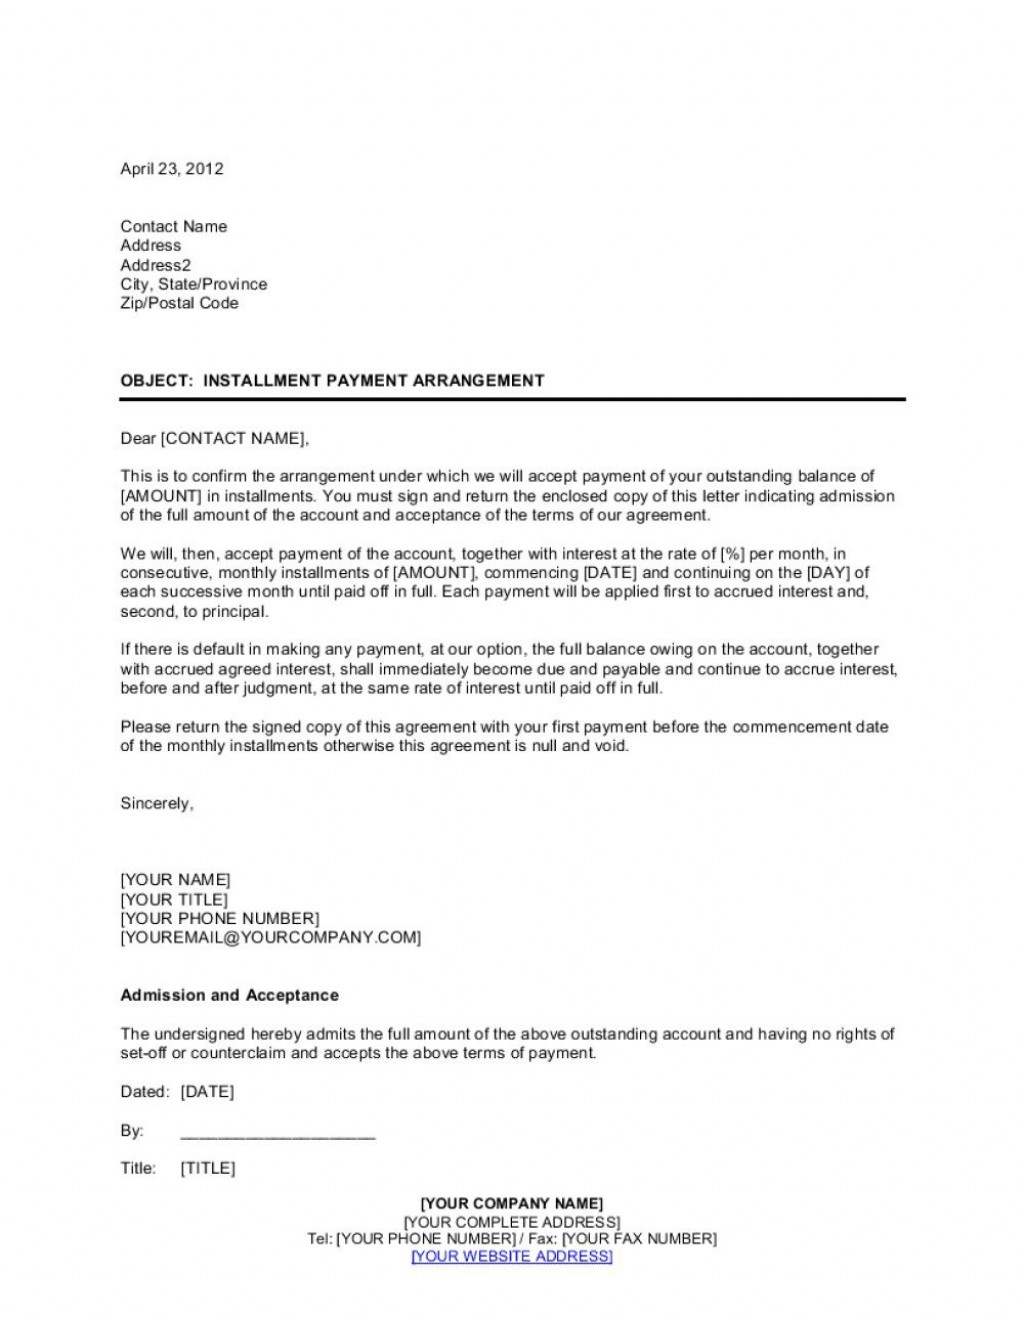 002 Simple Installment Payment Contract Template High Resolution  Car Agreement MonthlyLarge